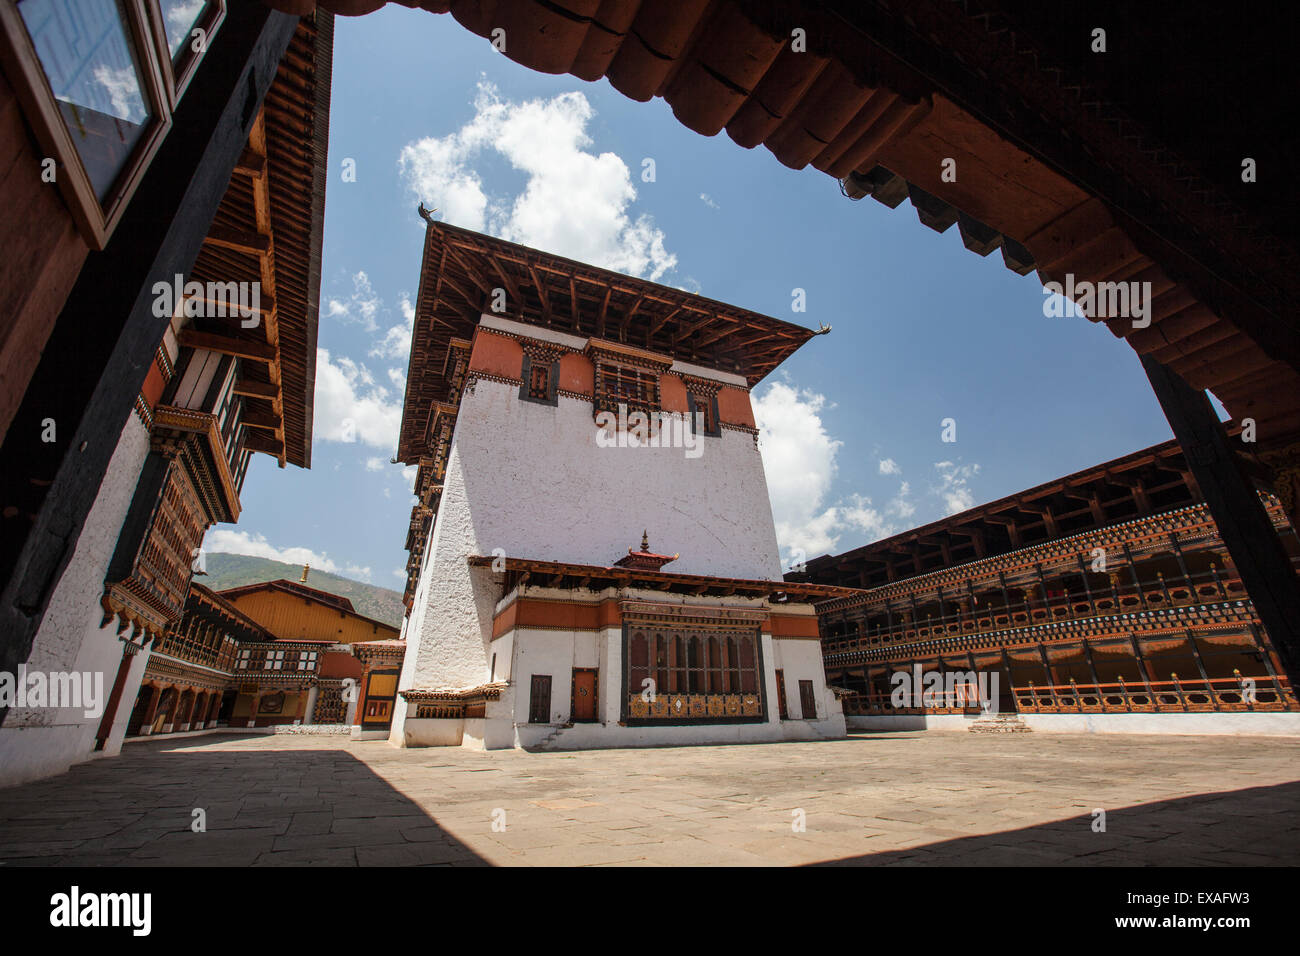 View of the interior courtyard at the Taktsang Monastery, one of the most famous Buddhist temples in Bhutan, Paro, - Stock Image